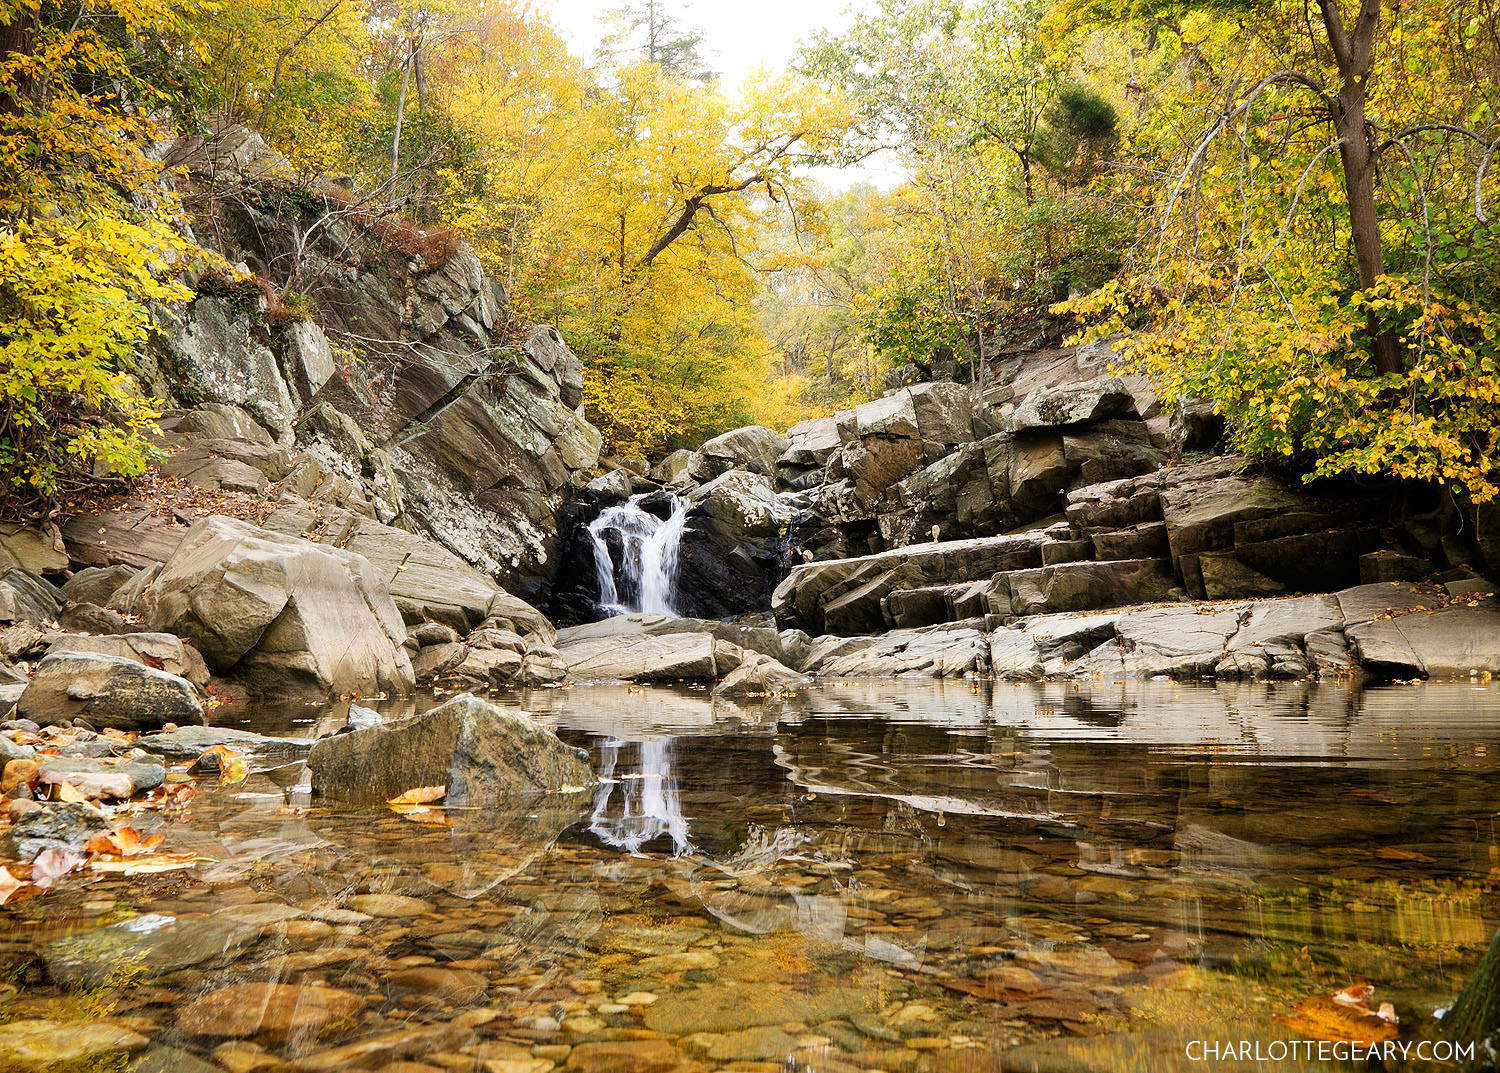 Scott's Run waterfall in McLean, Virginia